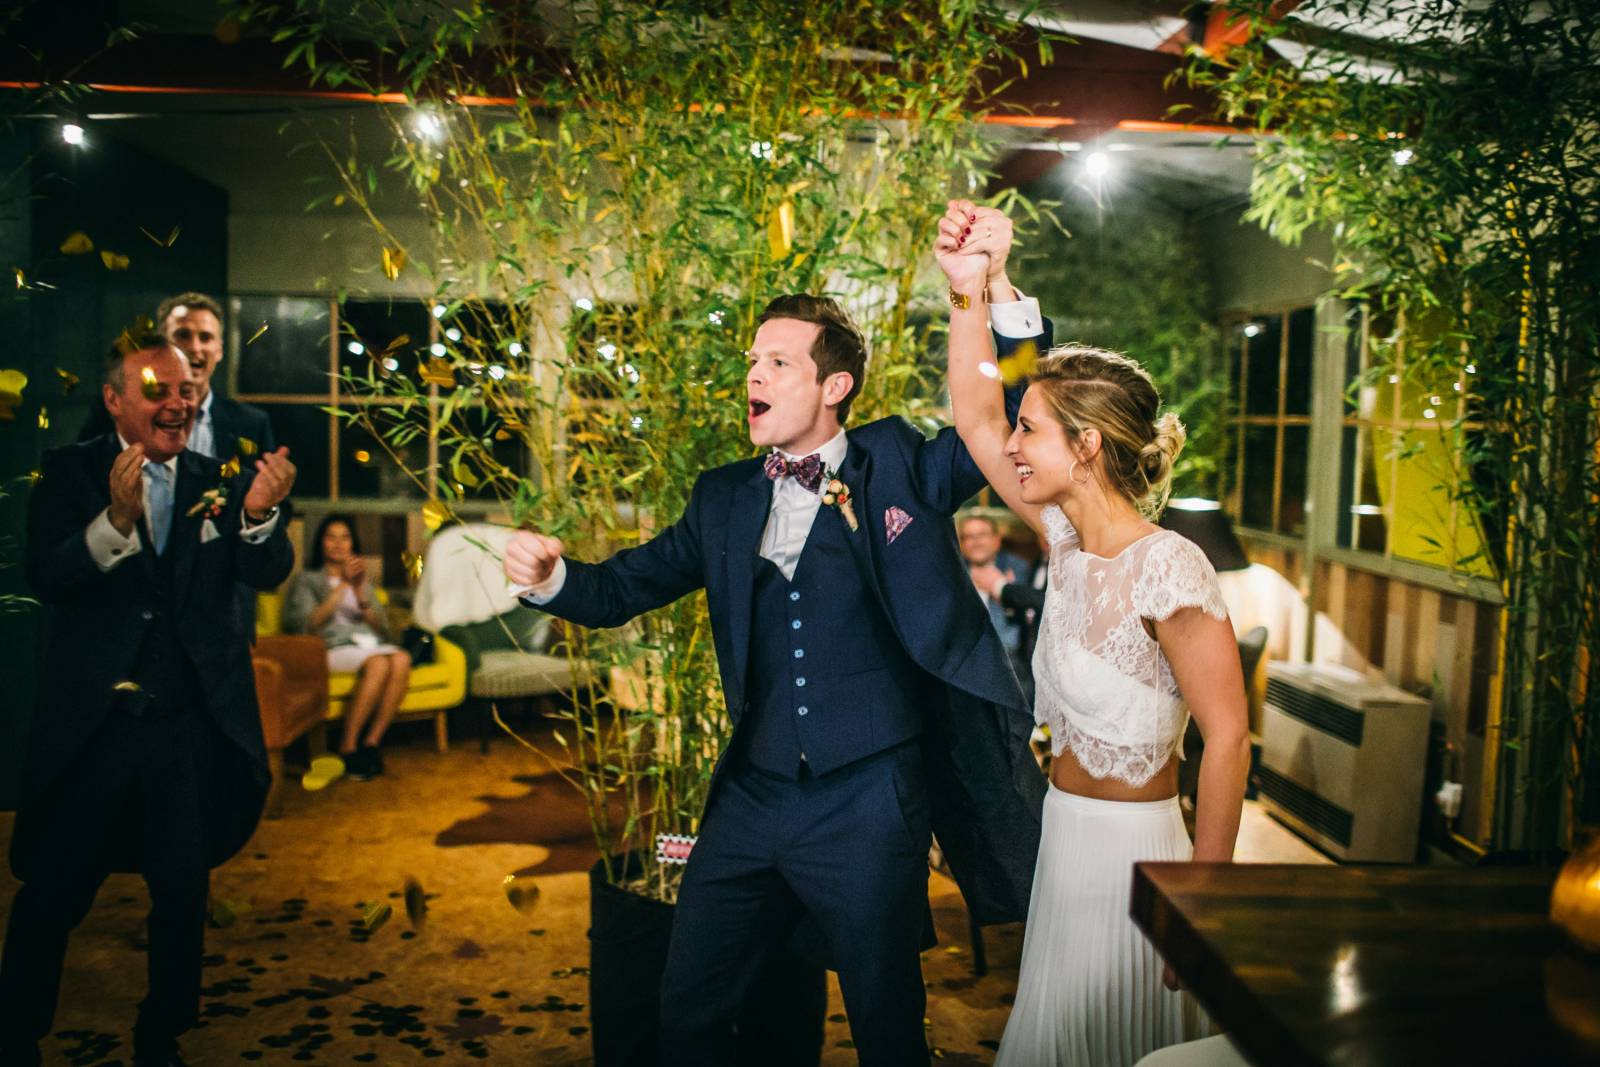 Real Wedding - Sanglier des Ardennes - House of Weddings  - 43